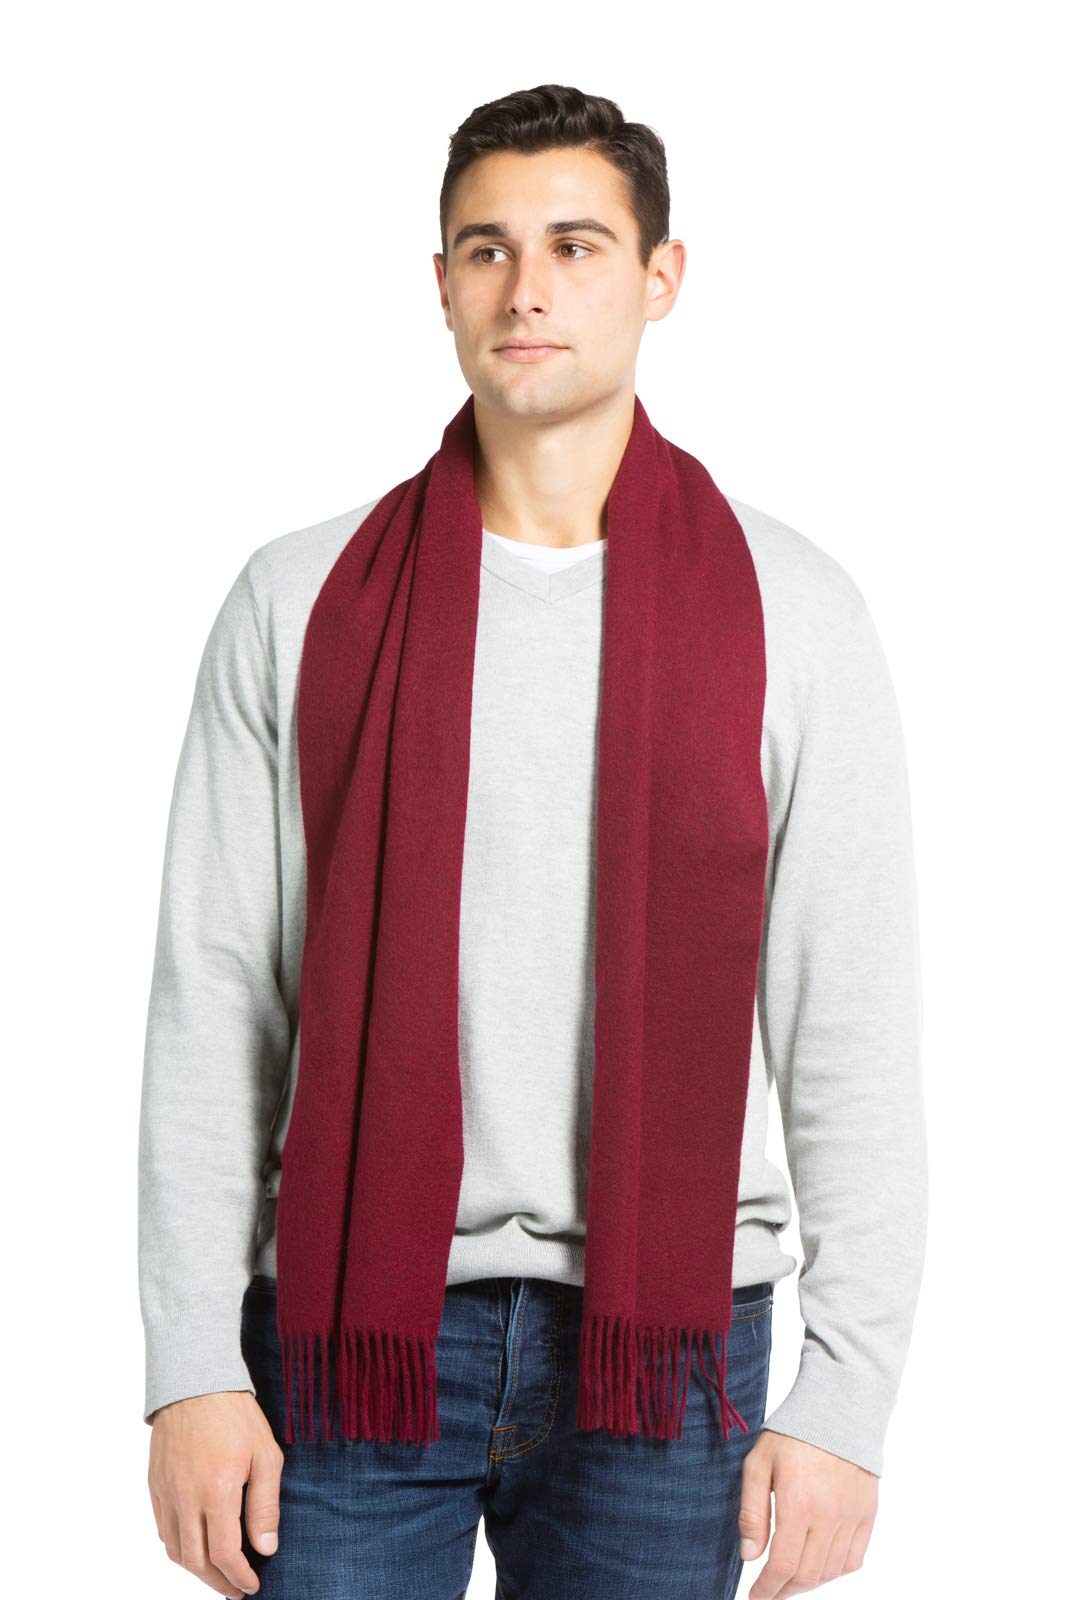 Fishers Finery Men's 100% Pure Cashmere Scarf, Warm and Comfortable (Cabernet)